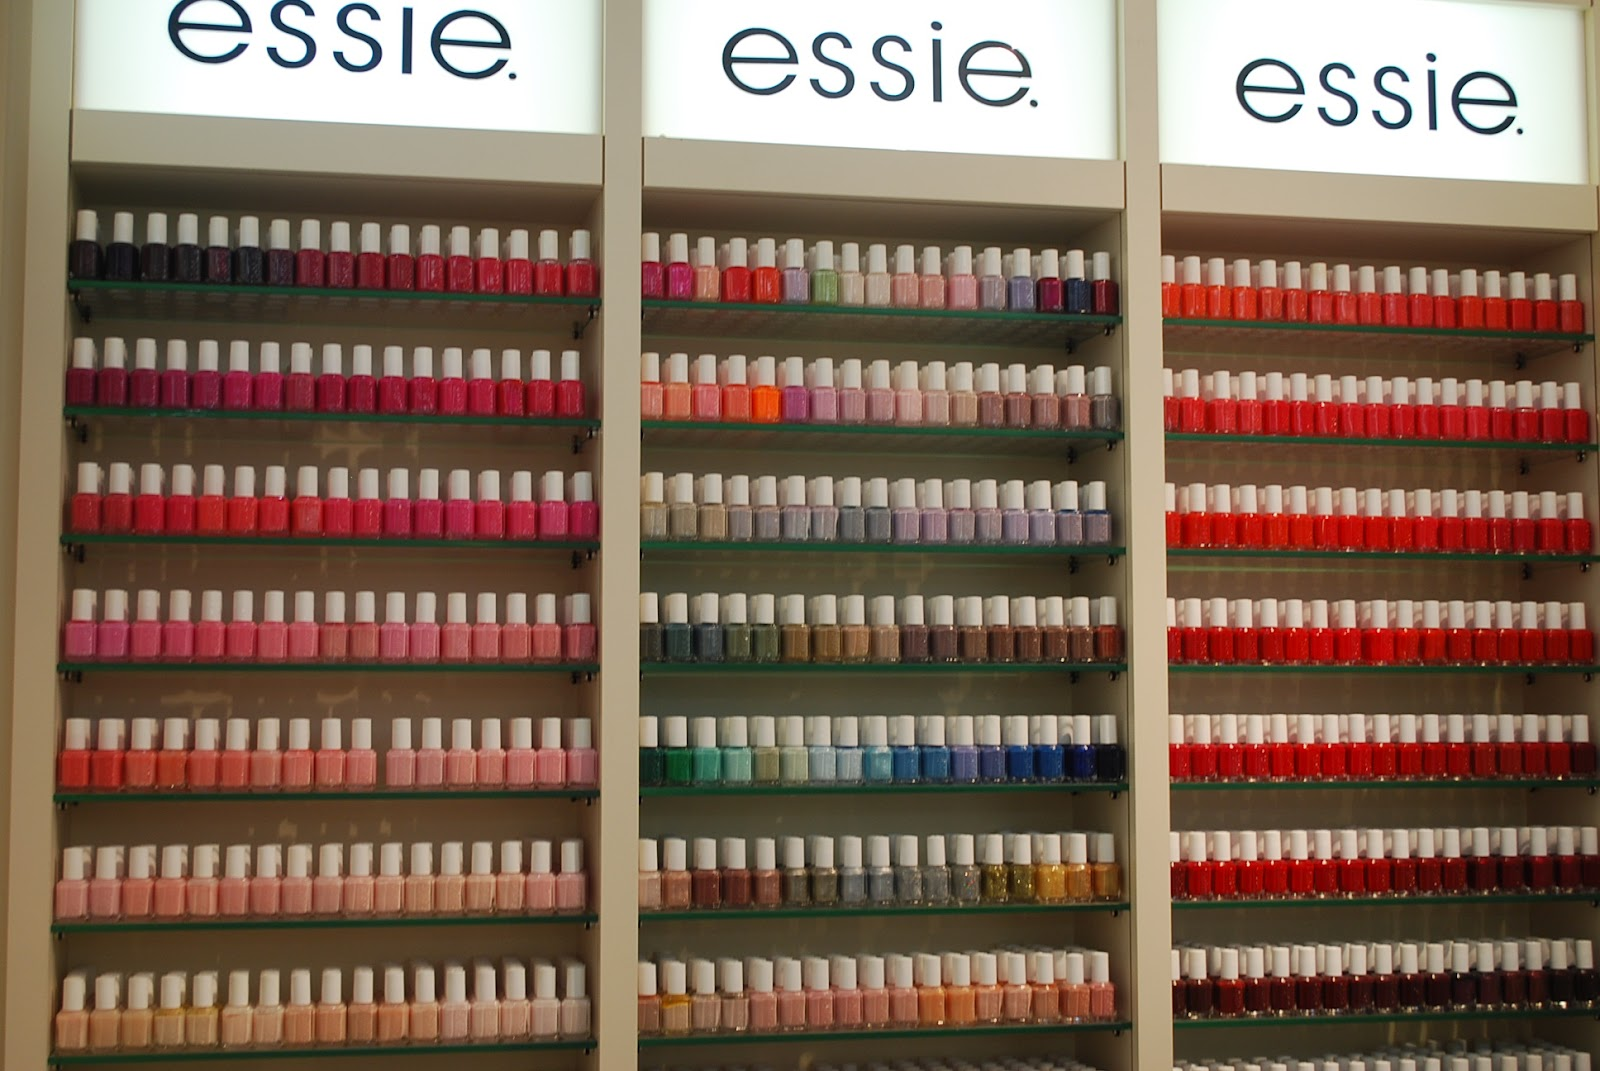 Candy Cake12: essie In The Town